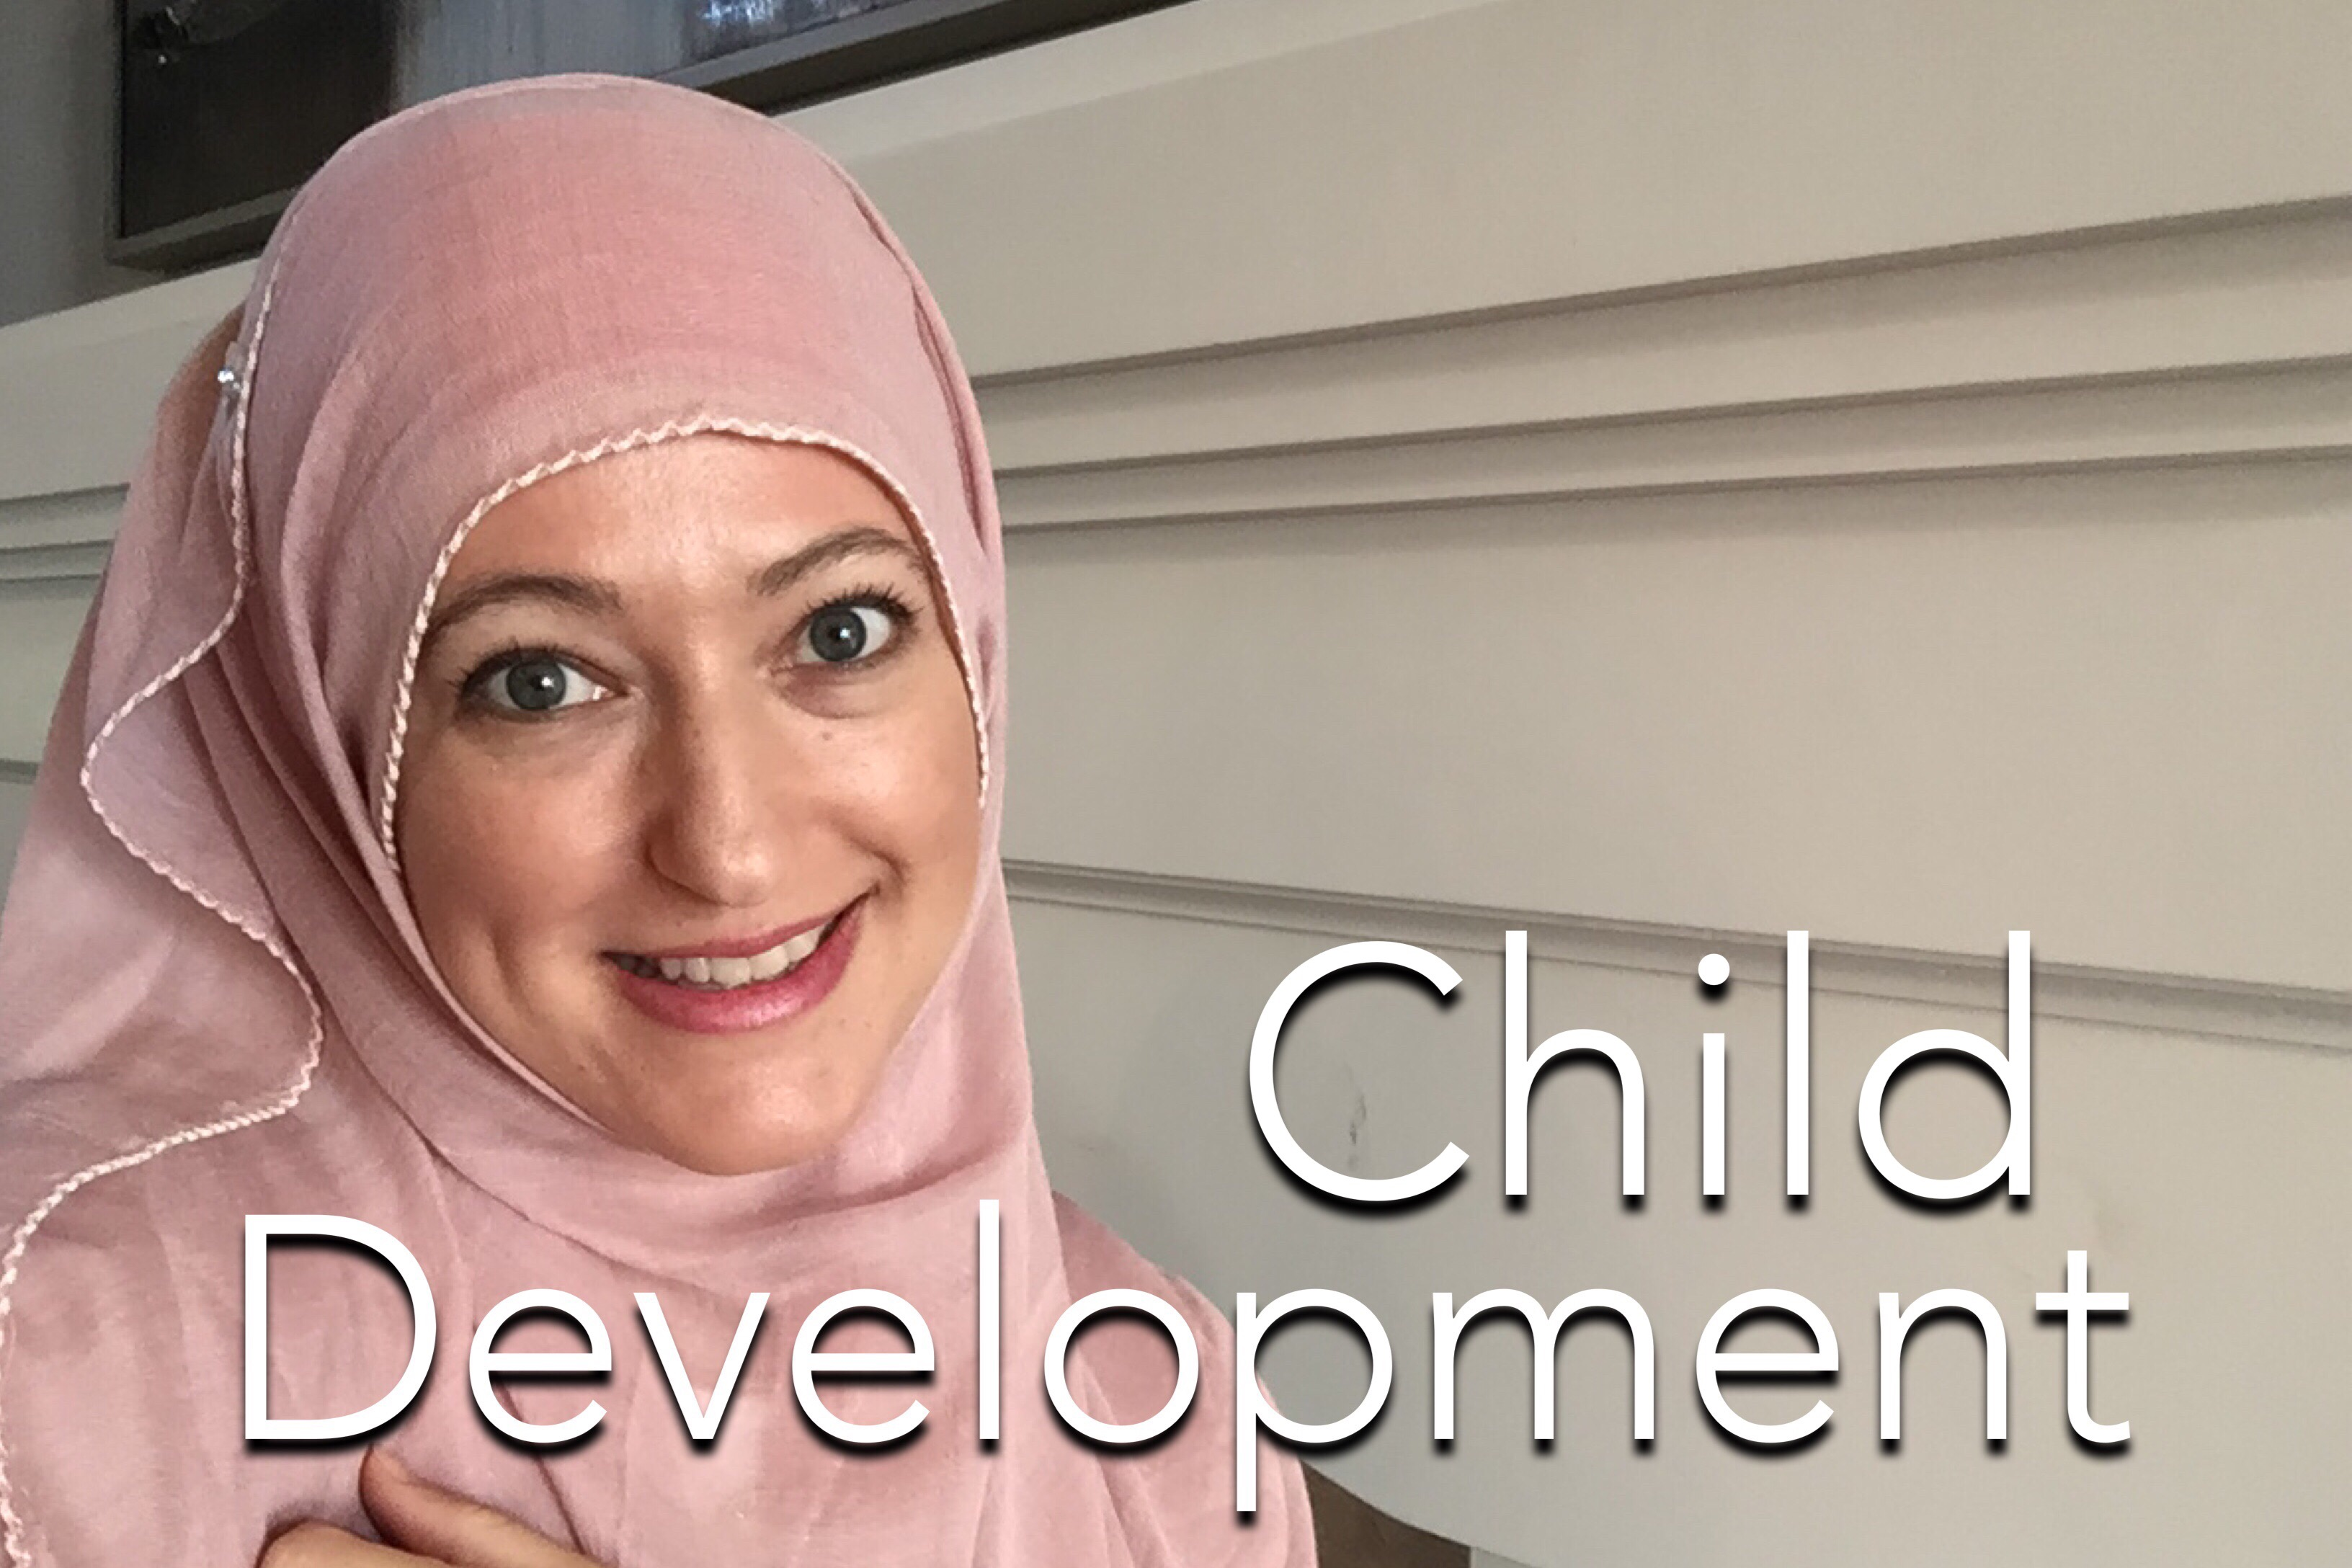 Child Development | Charlotte Mason & Waldorf